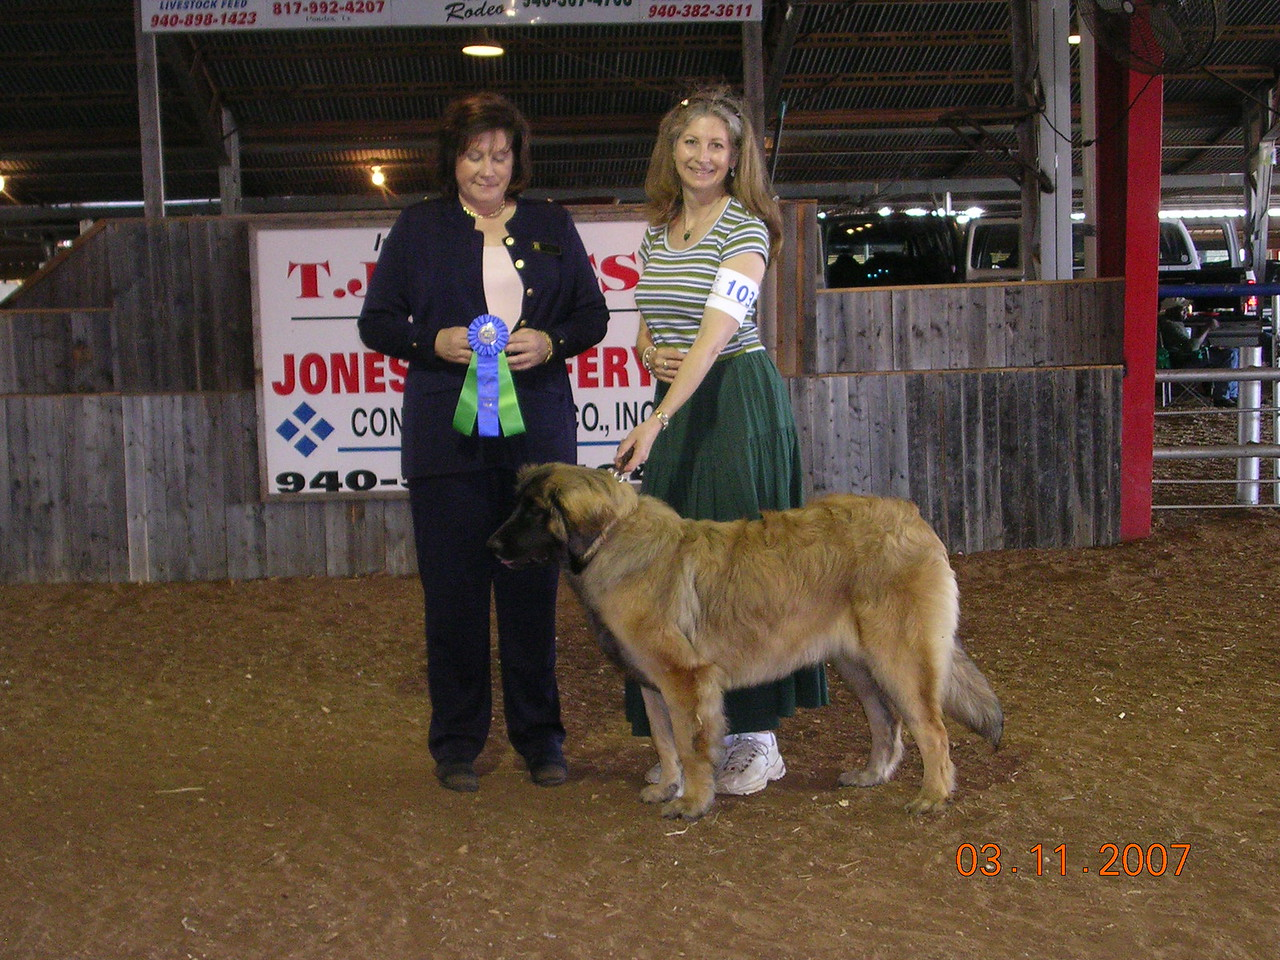 Sienna get her first major (4 pt major) at almost 7 mths old.  She won best female on show 1 of Sunday, 3-11-07, and also earns her UKC Championship.  WOW!!!!